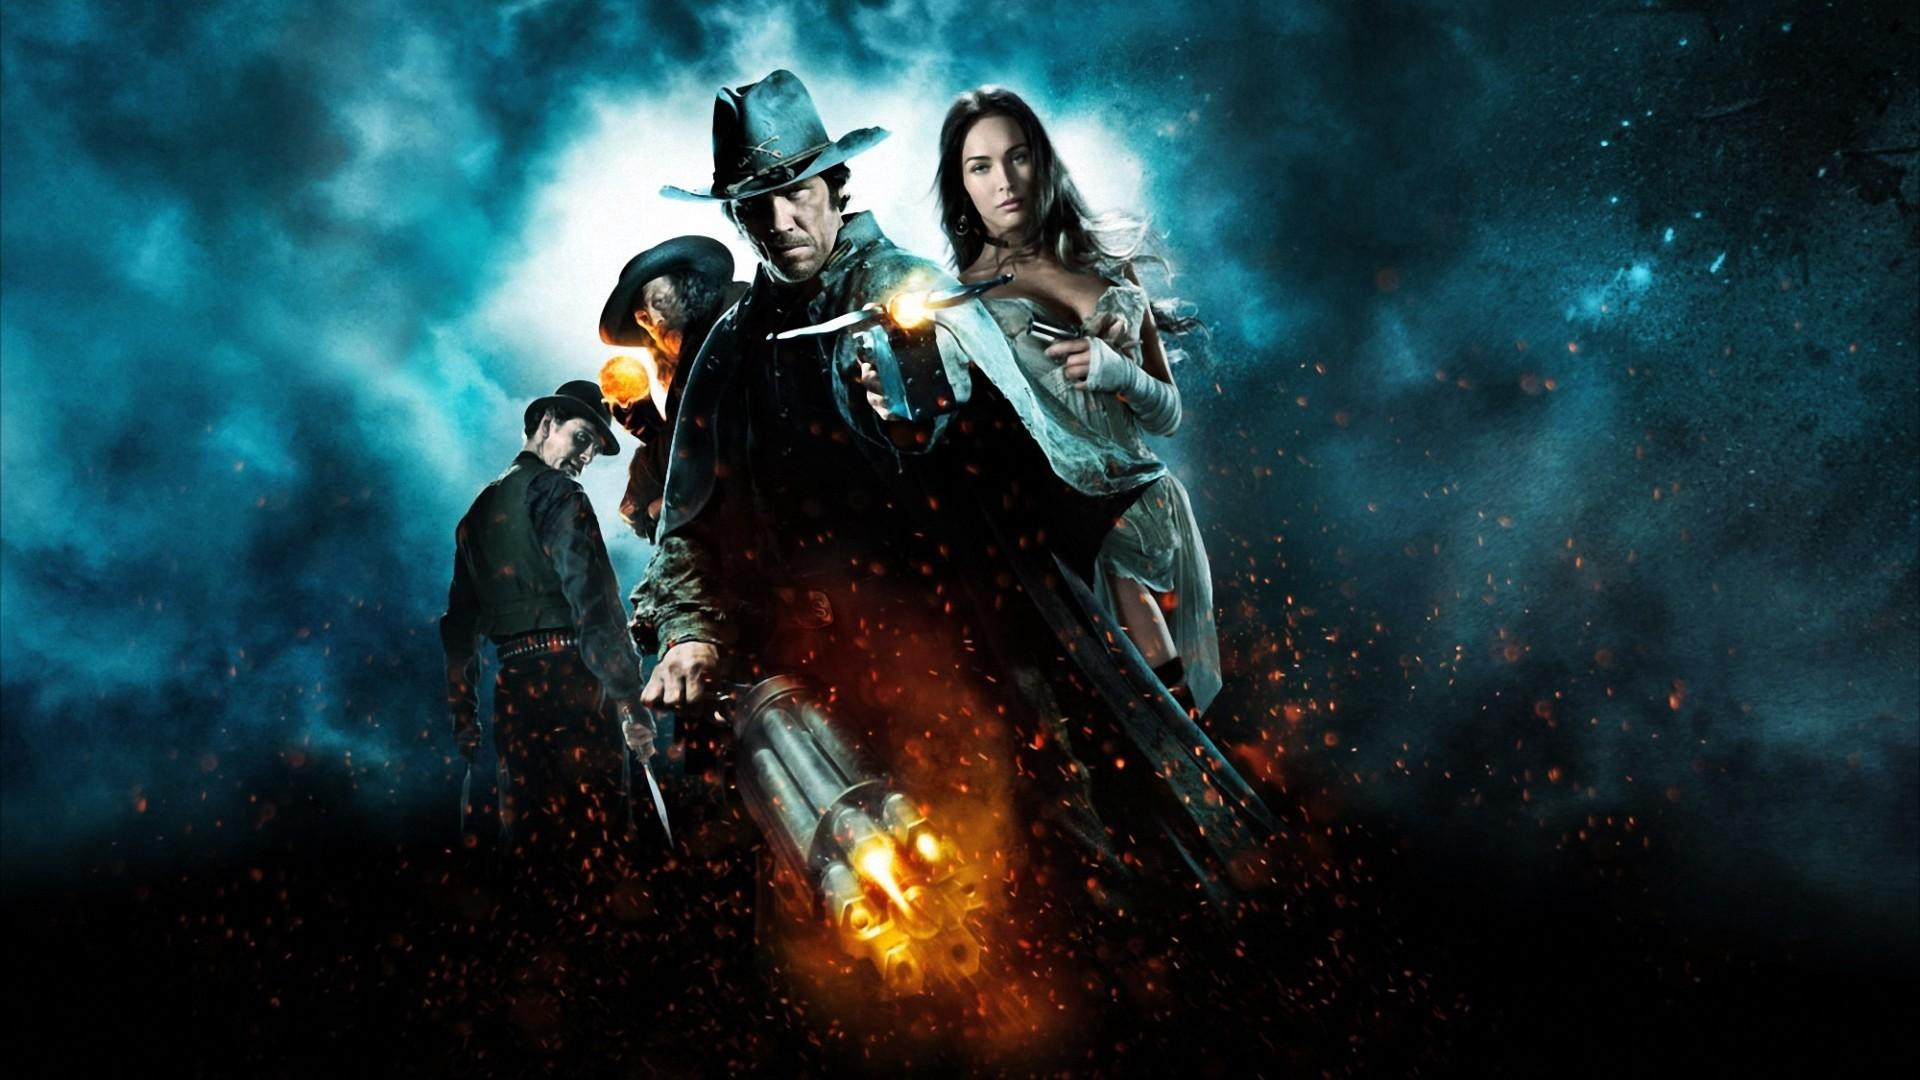 Analytic Perspective On Time Series From Jonah Hex – Creative Analytics